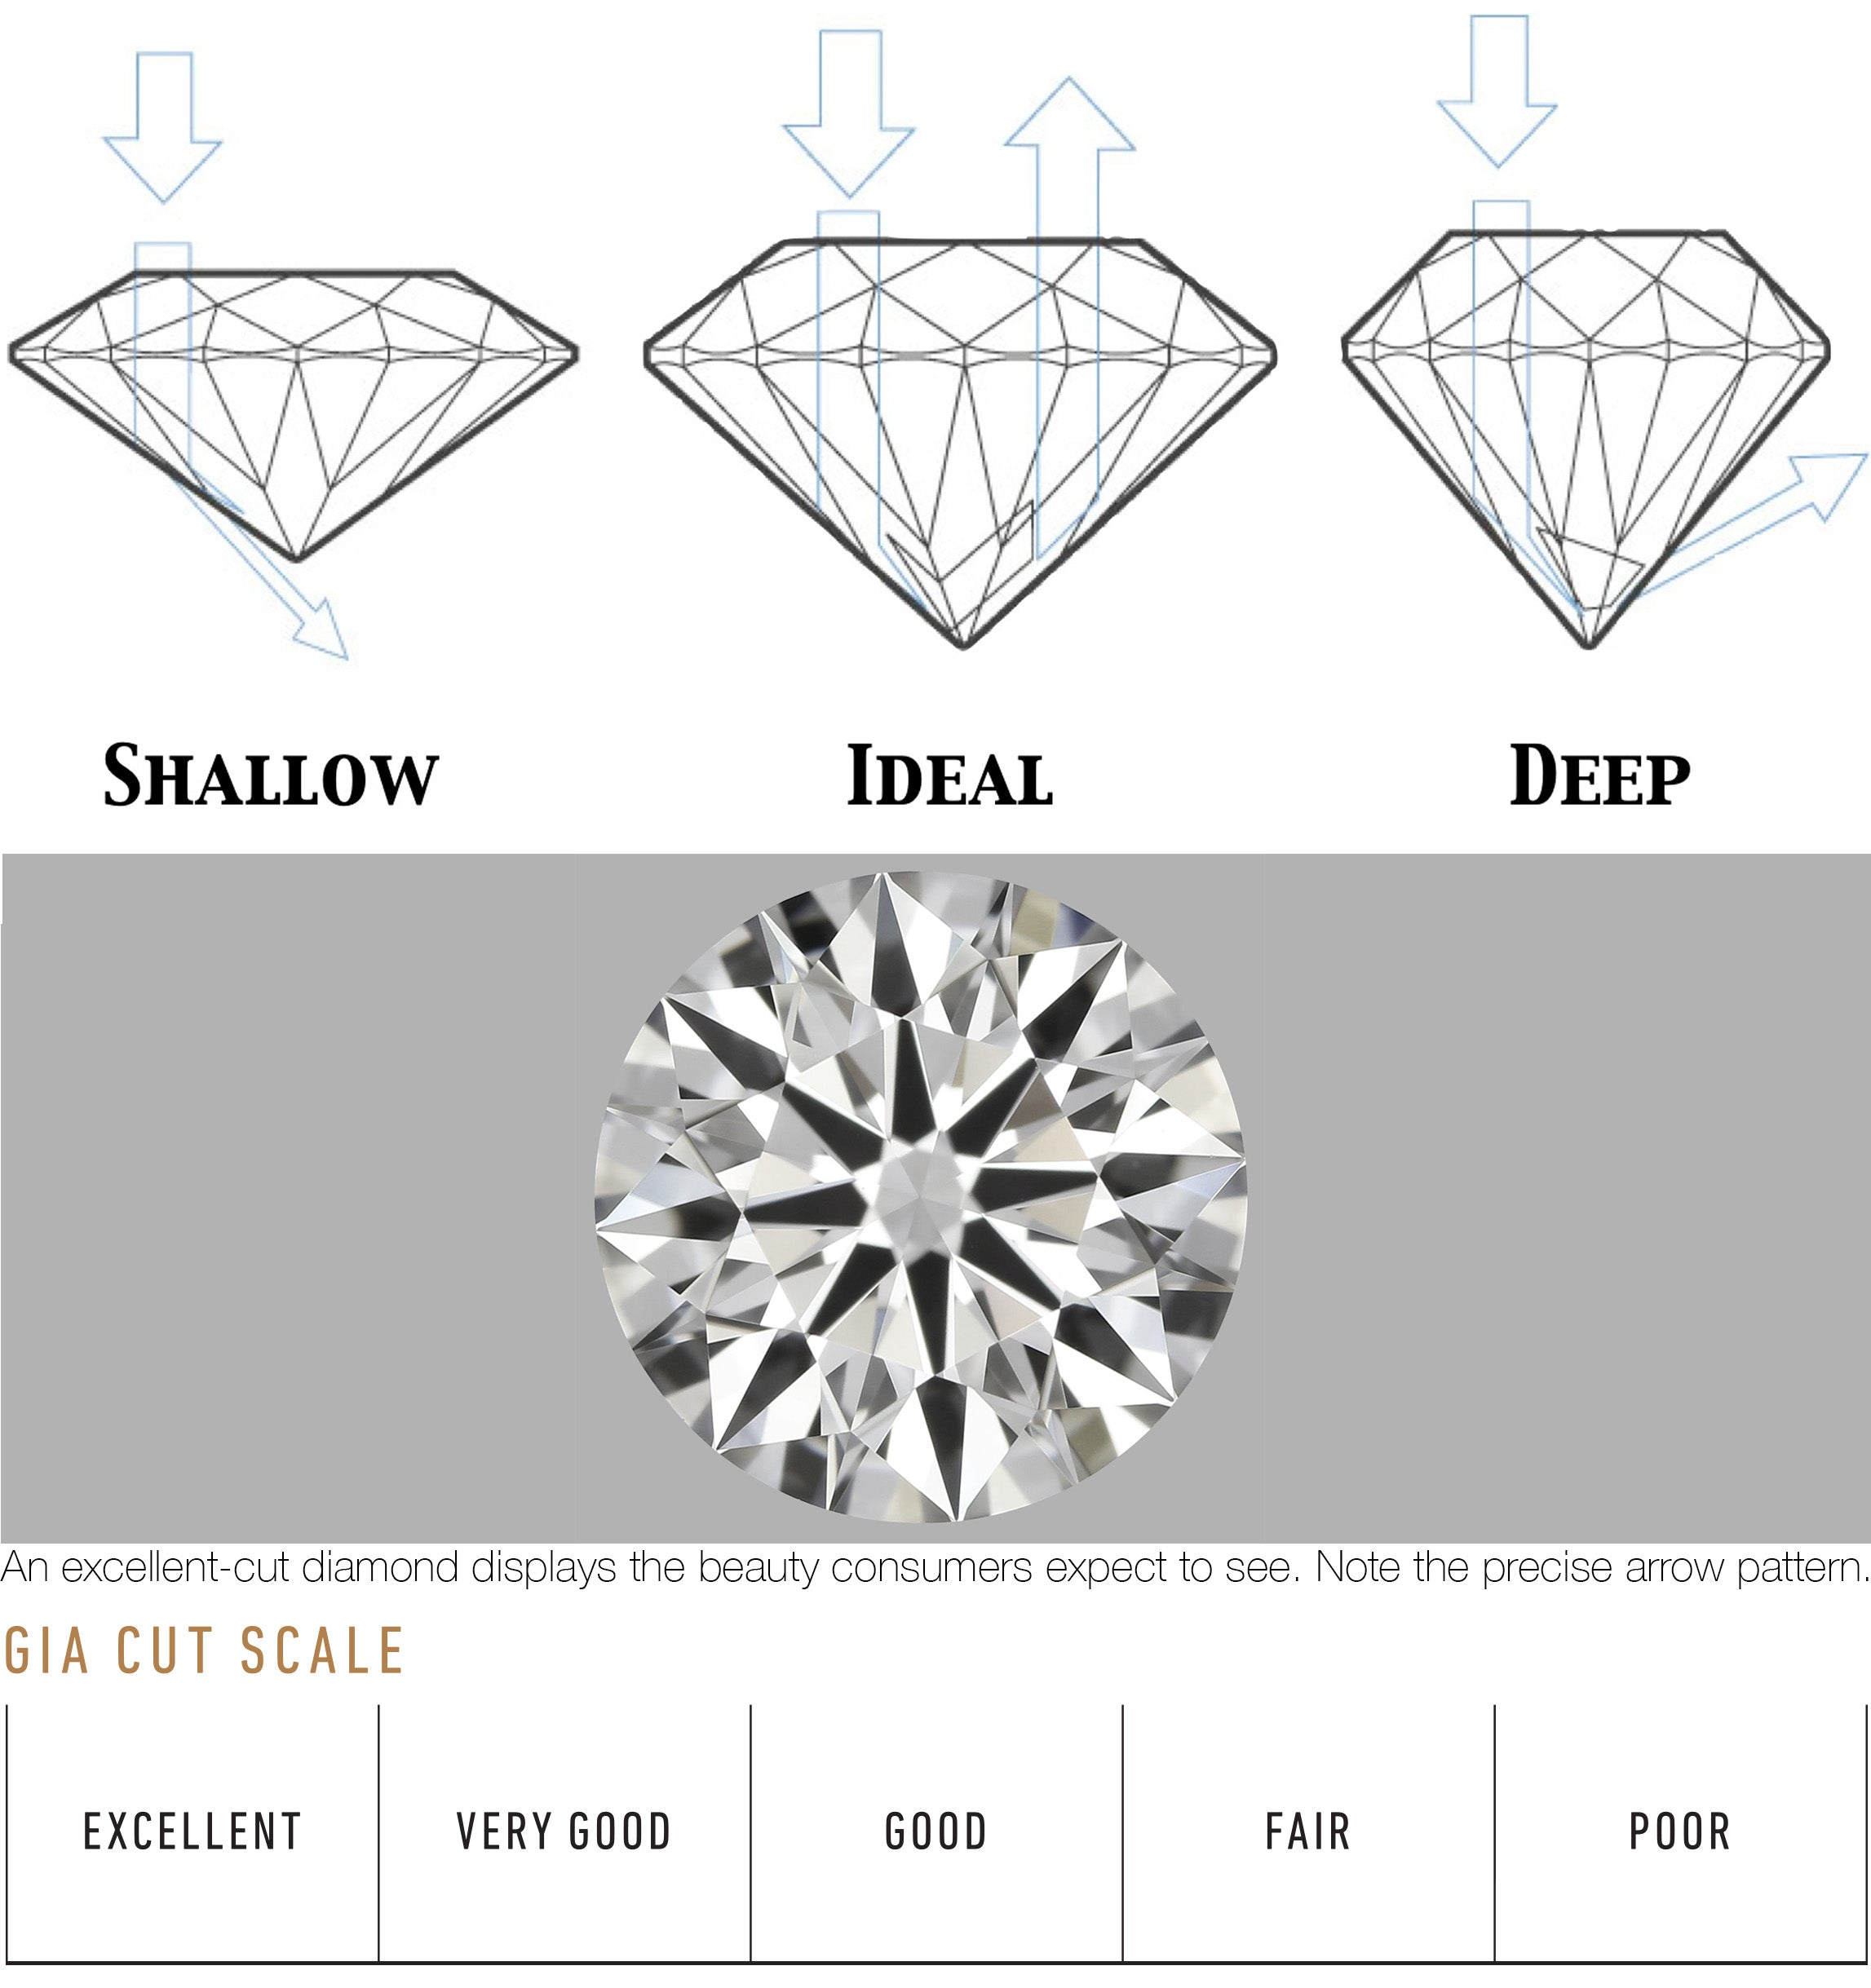 side blog i a the and you mean are h carat see look stones color what turn an at hand good is that these will diamond rare diamonds colored on right have brown